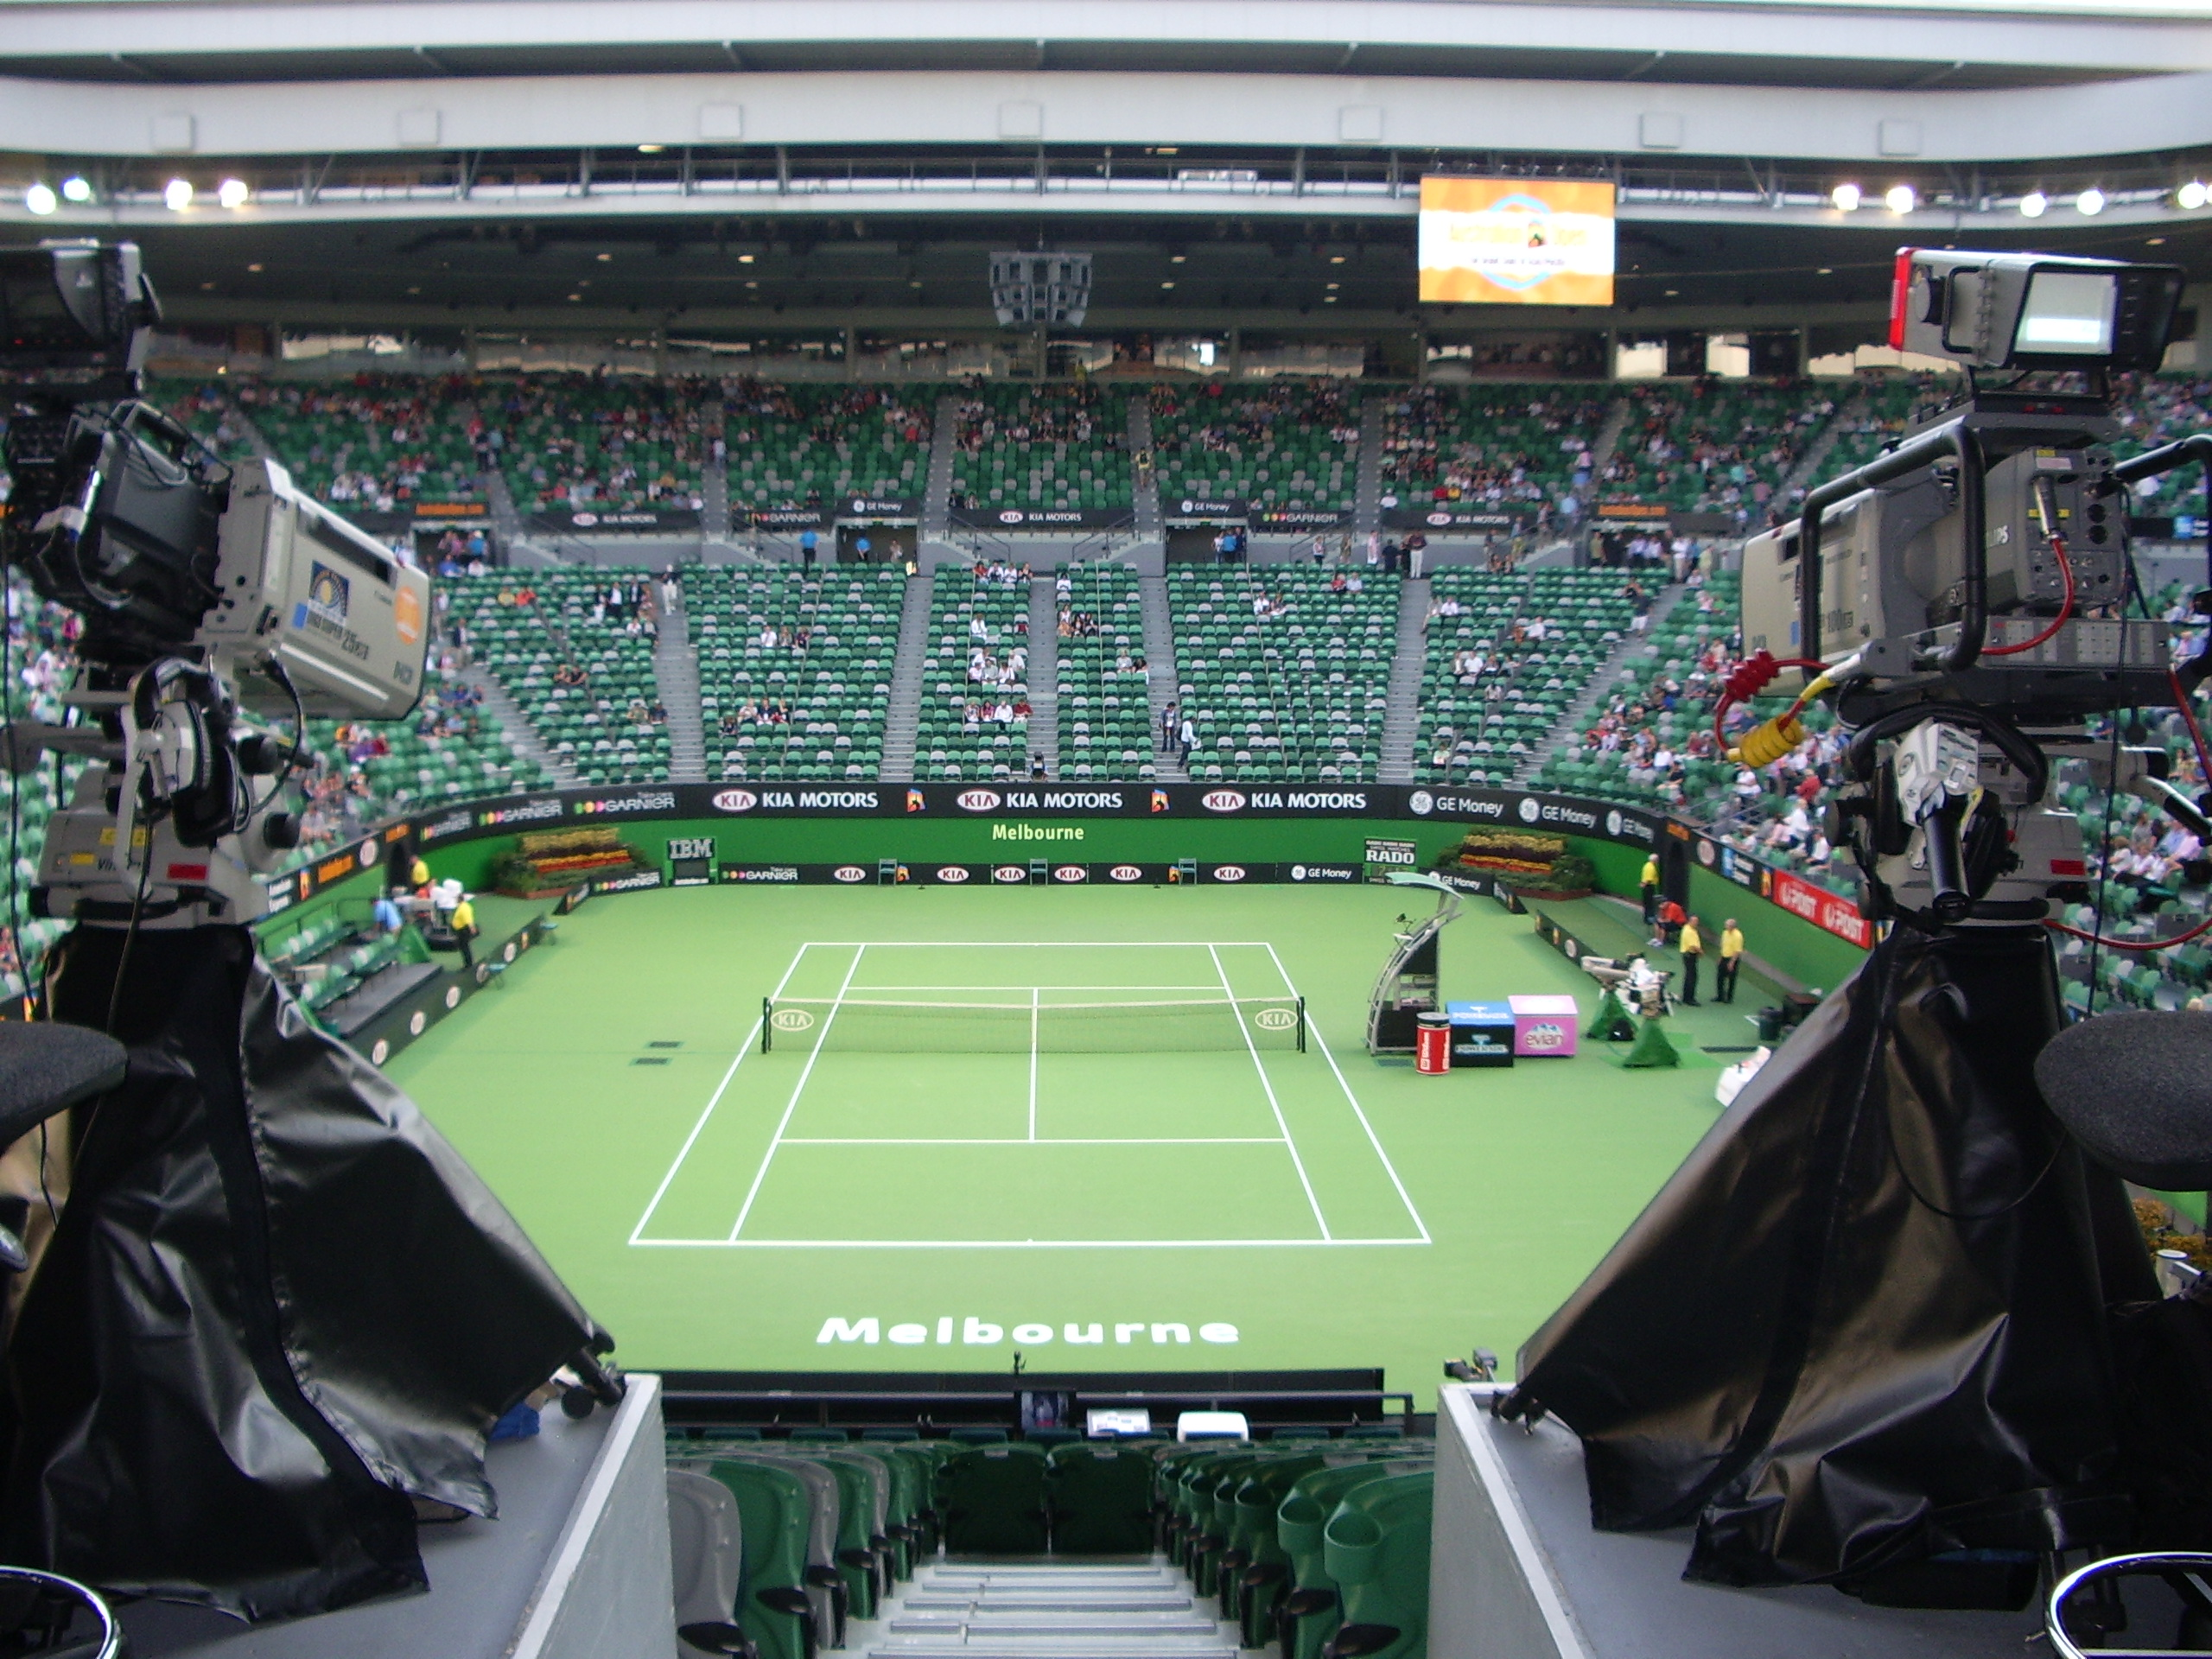 ATP Media launches a new Streaming Platform for Tennis Lovers